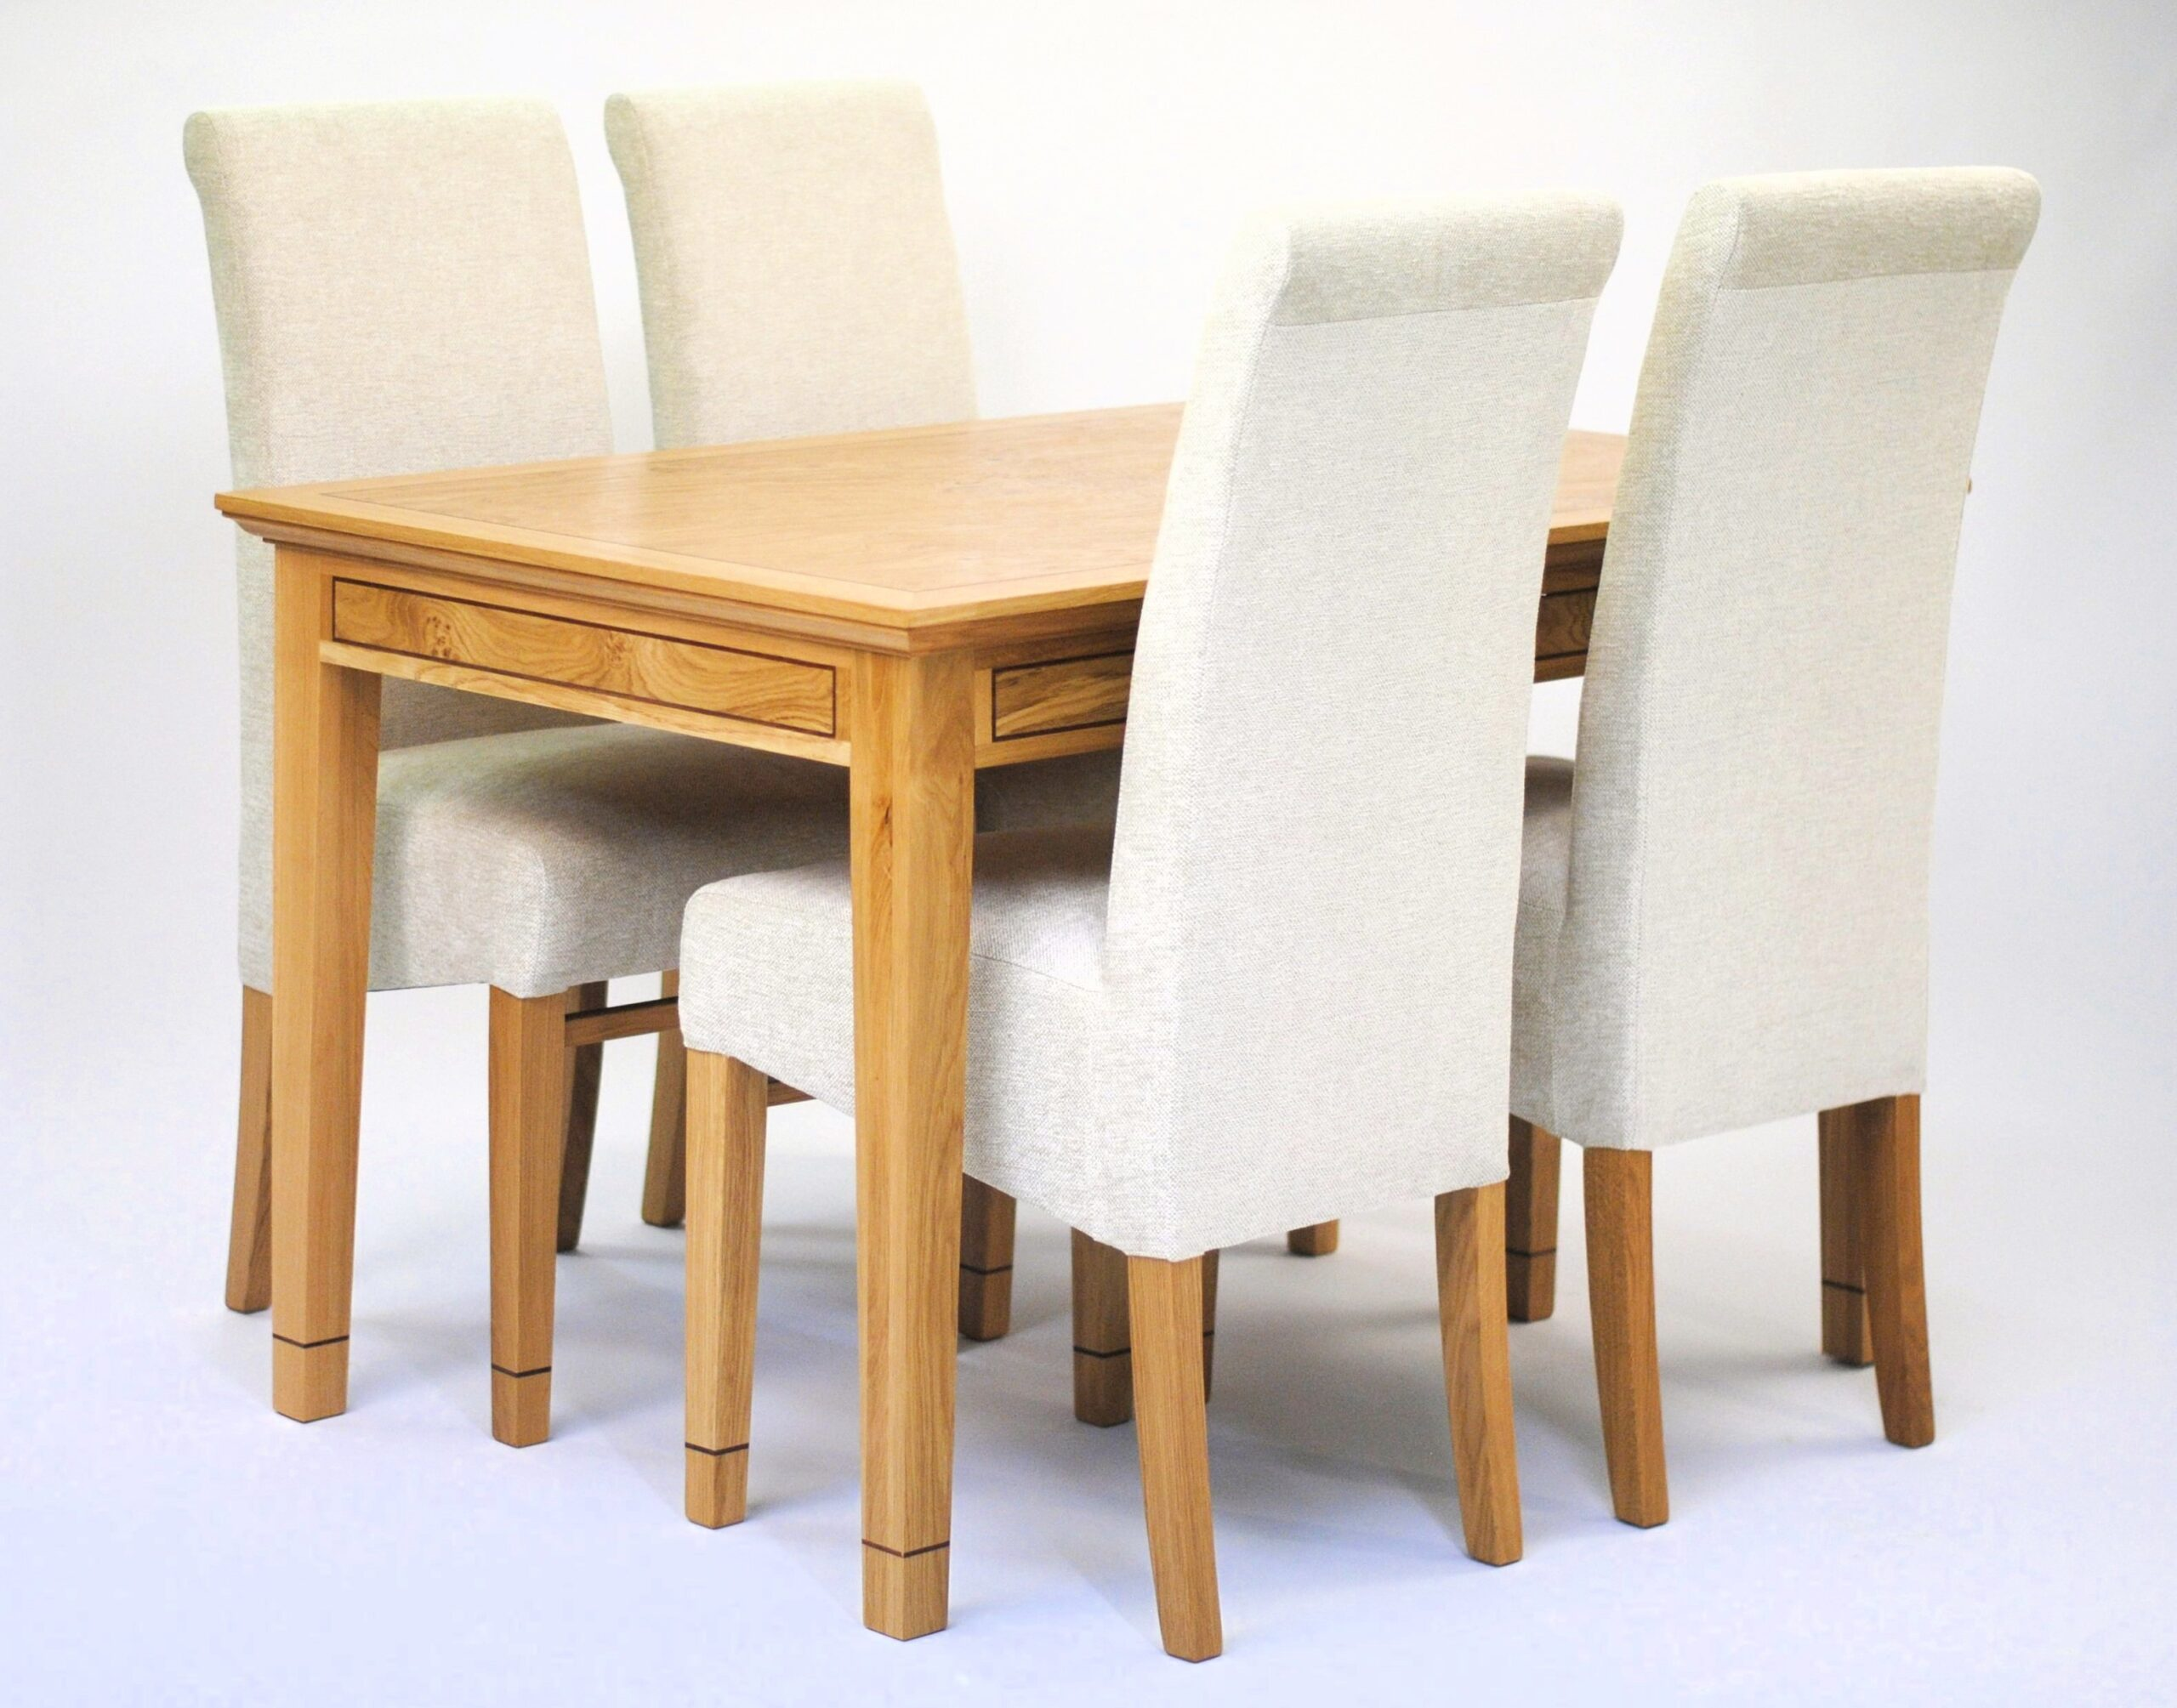 Oak Dining Table 4 Chairs Tanner Furniture Designs